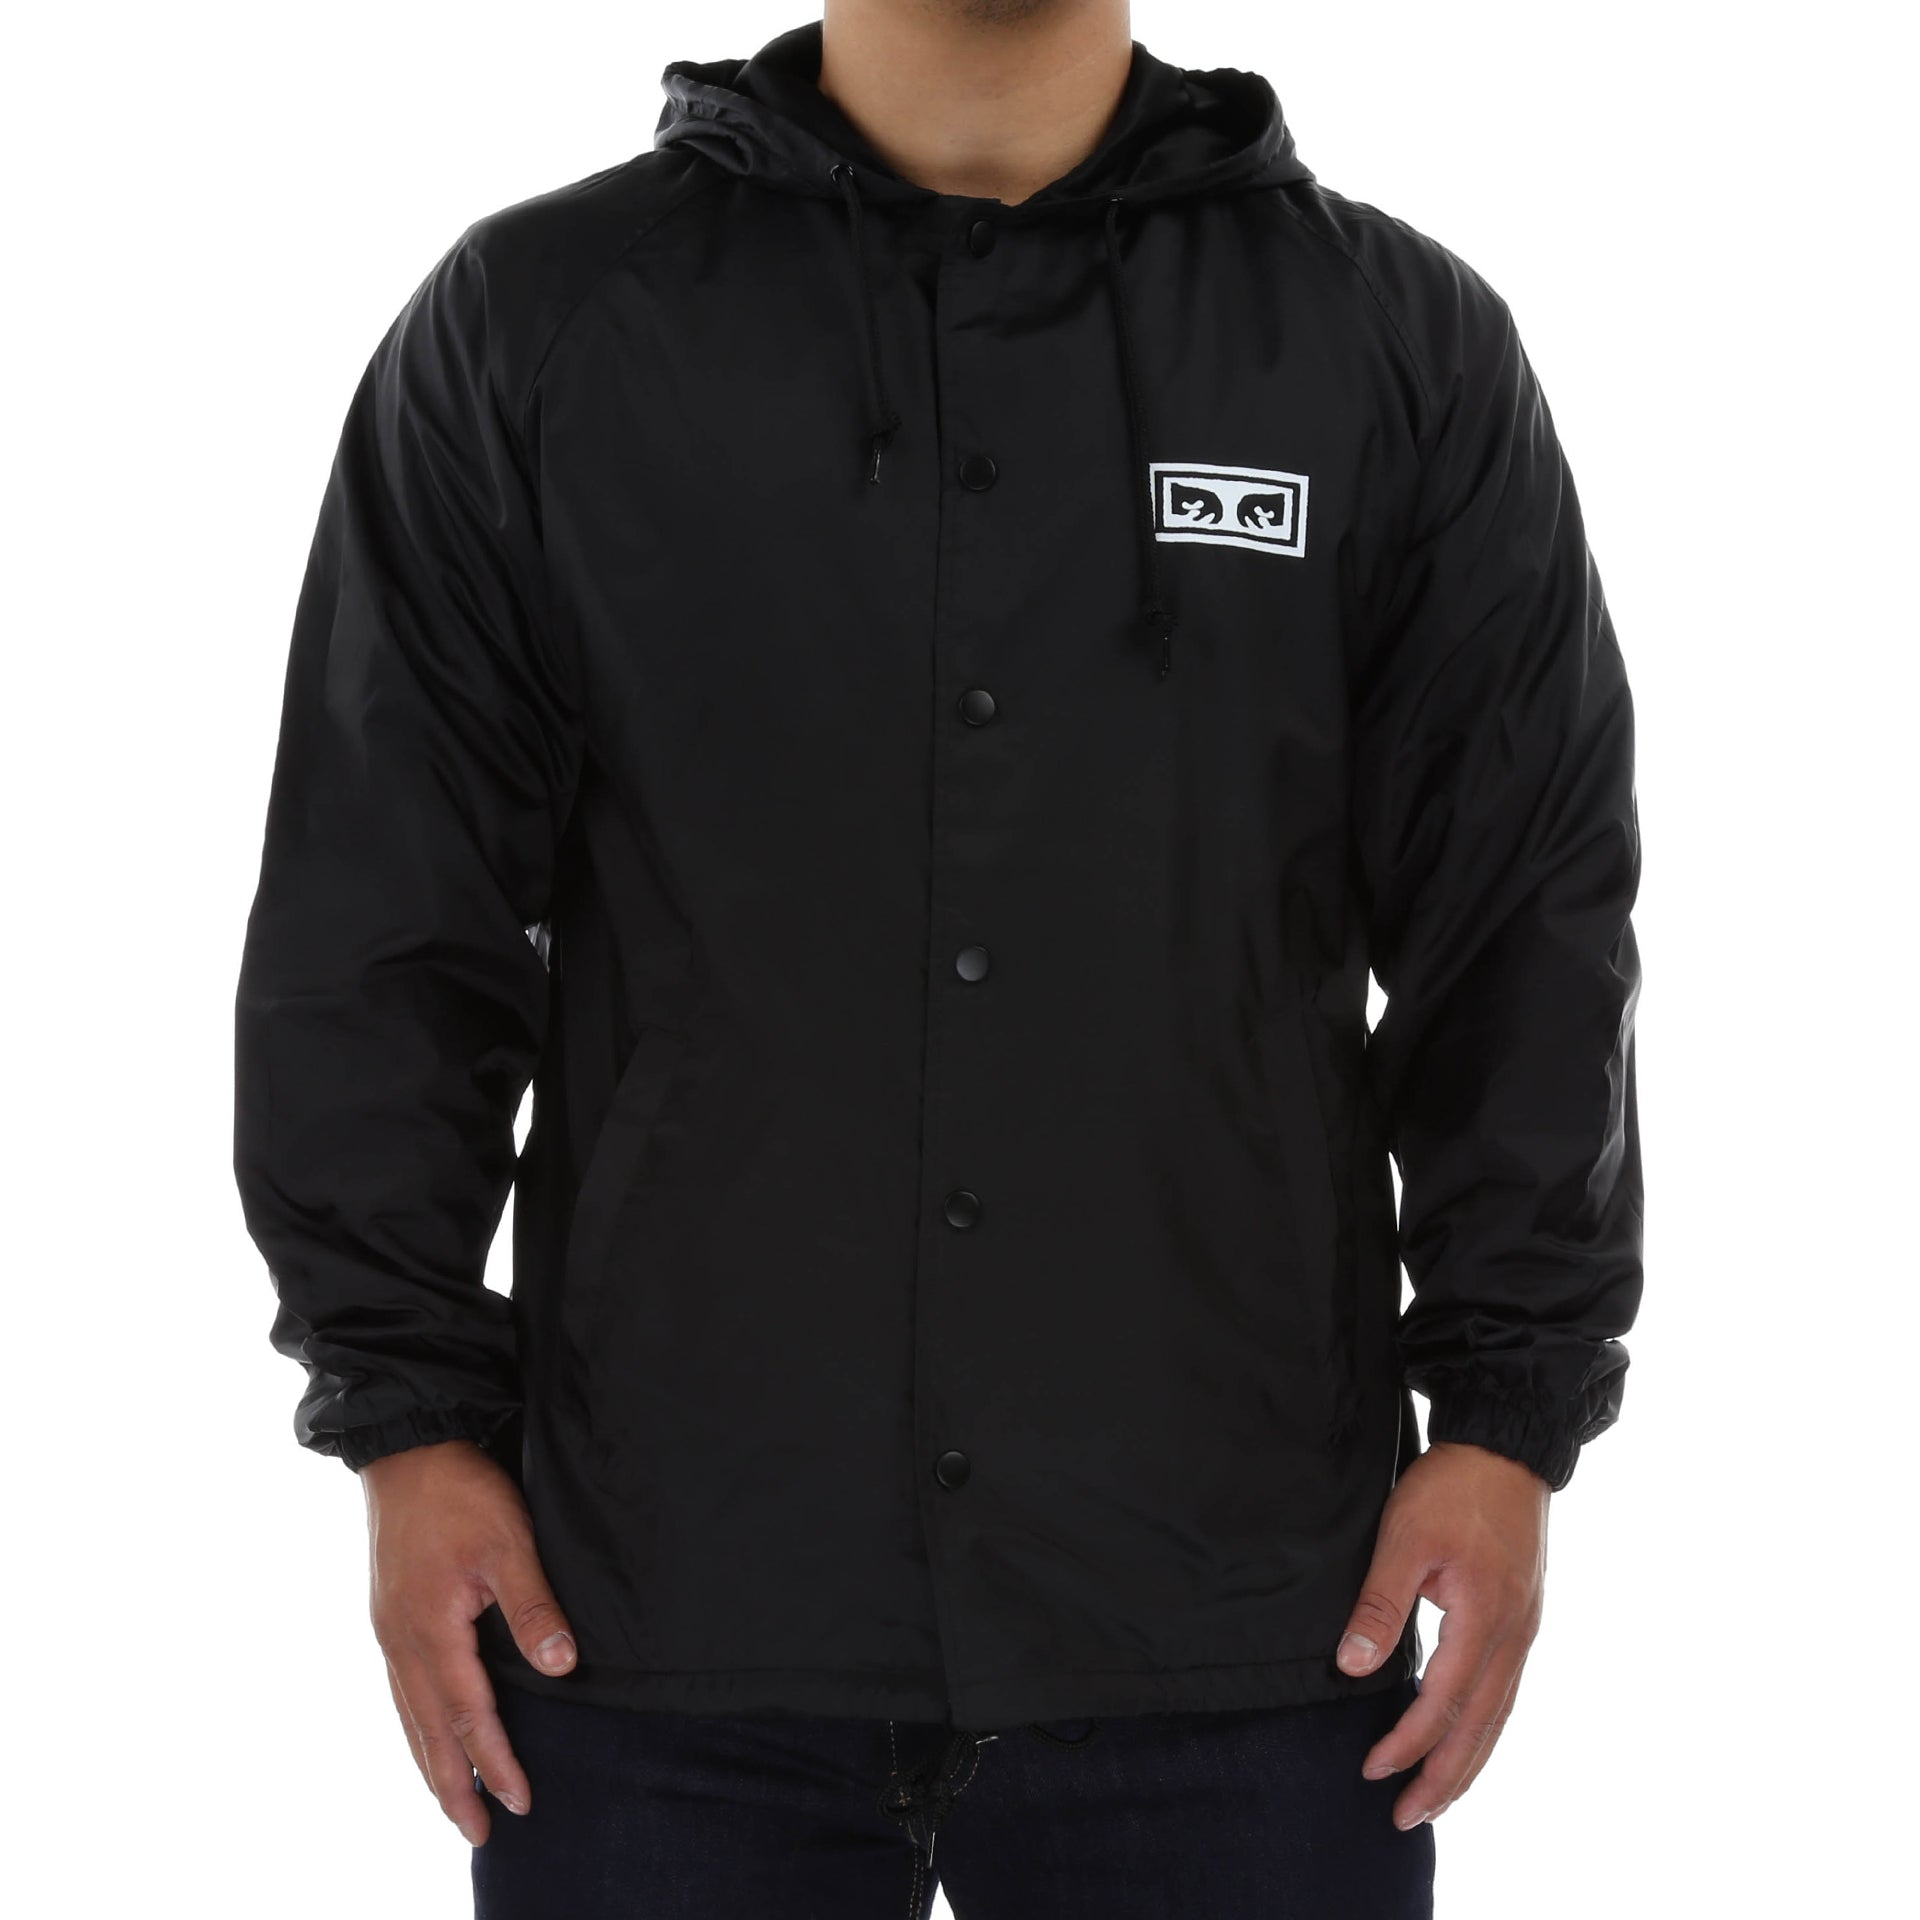 Obey windbreaker jackets